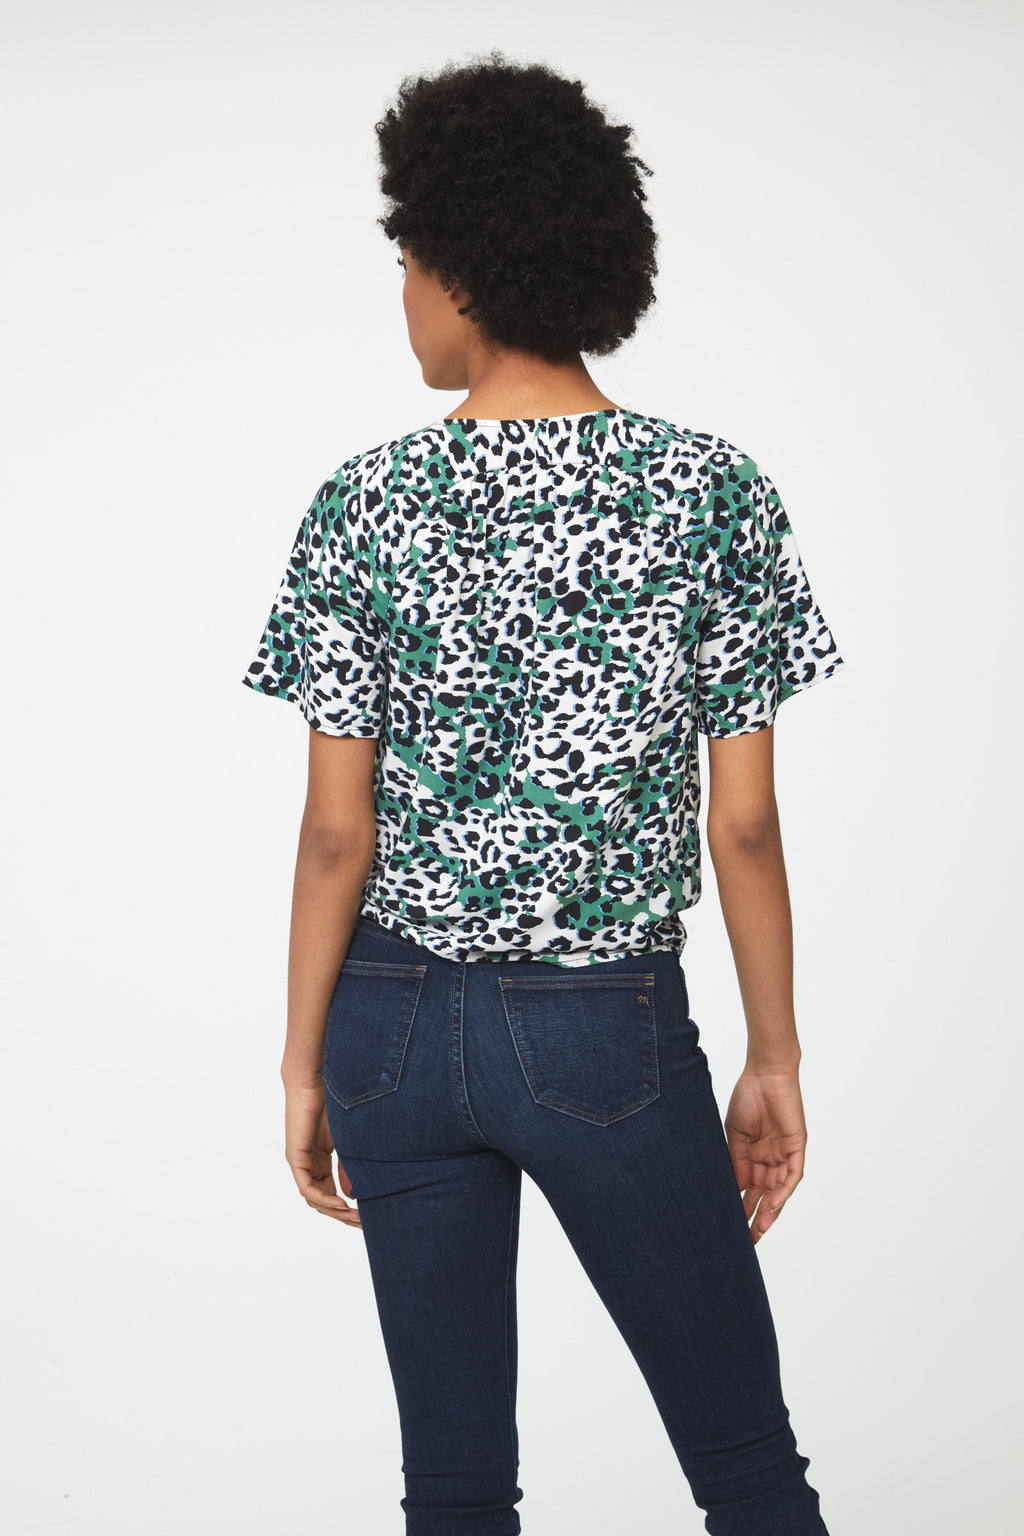 back of woman wearing a silky, short sleeve, button front v-neck blouse in green, white, and black leopard print with self tie front